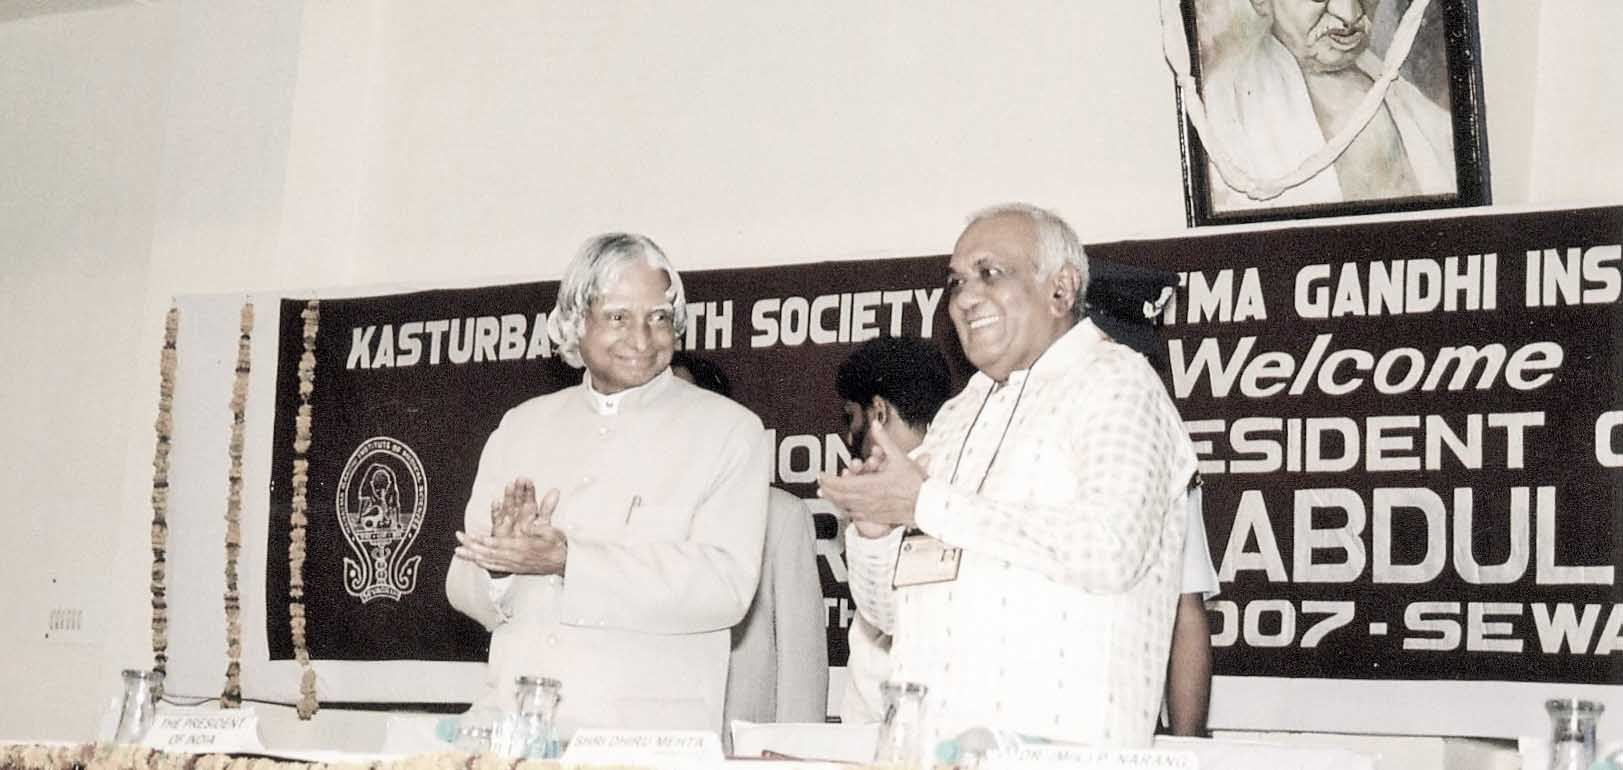 Abdul Kalam - then President of India in 2007